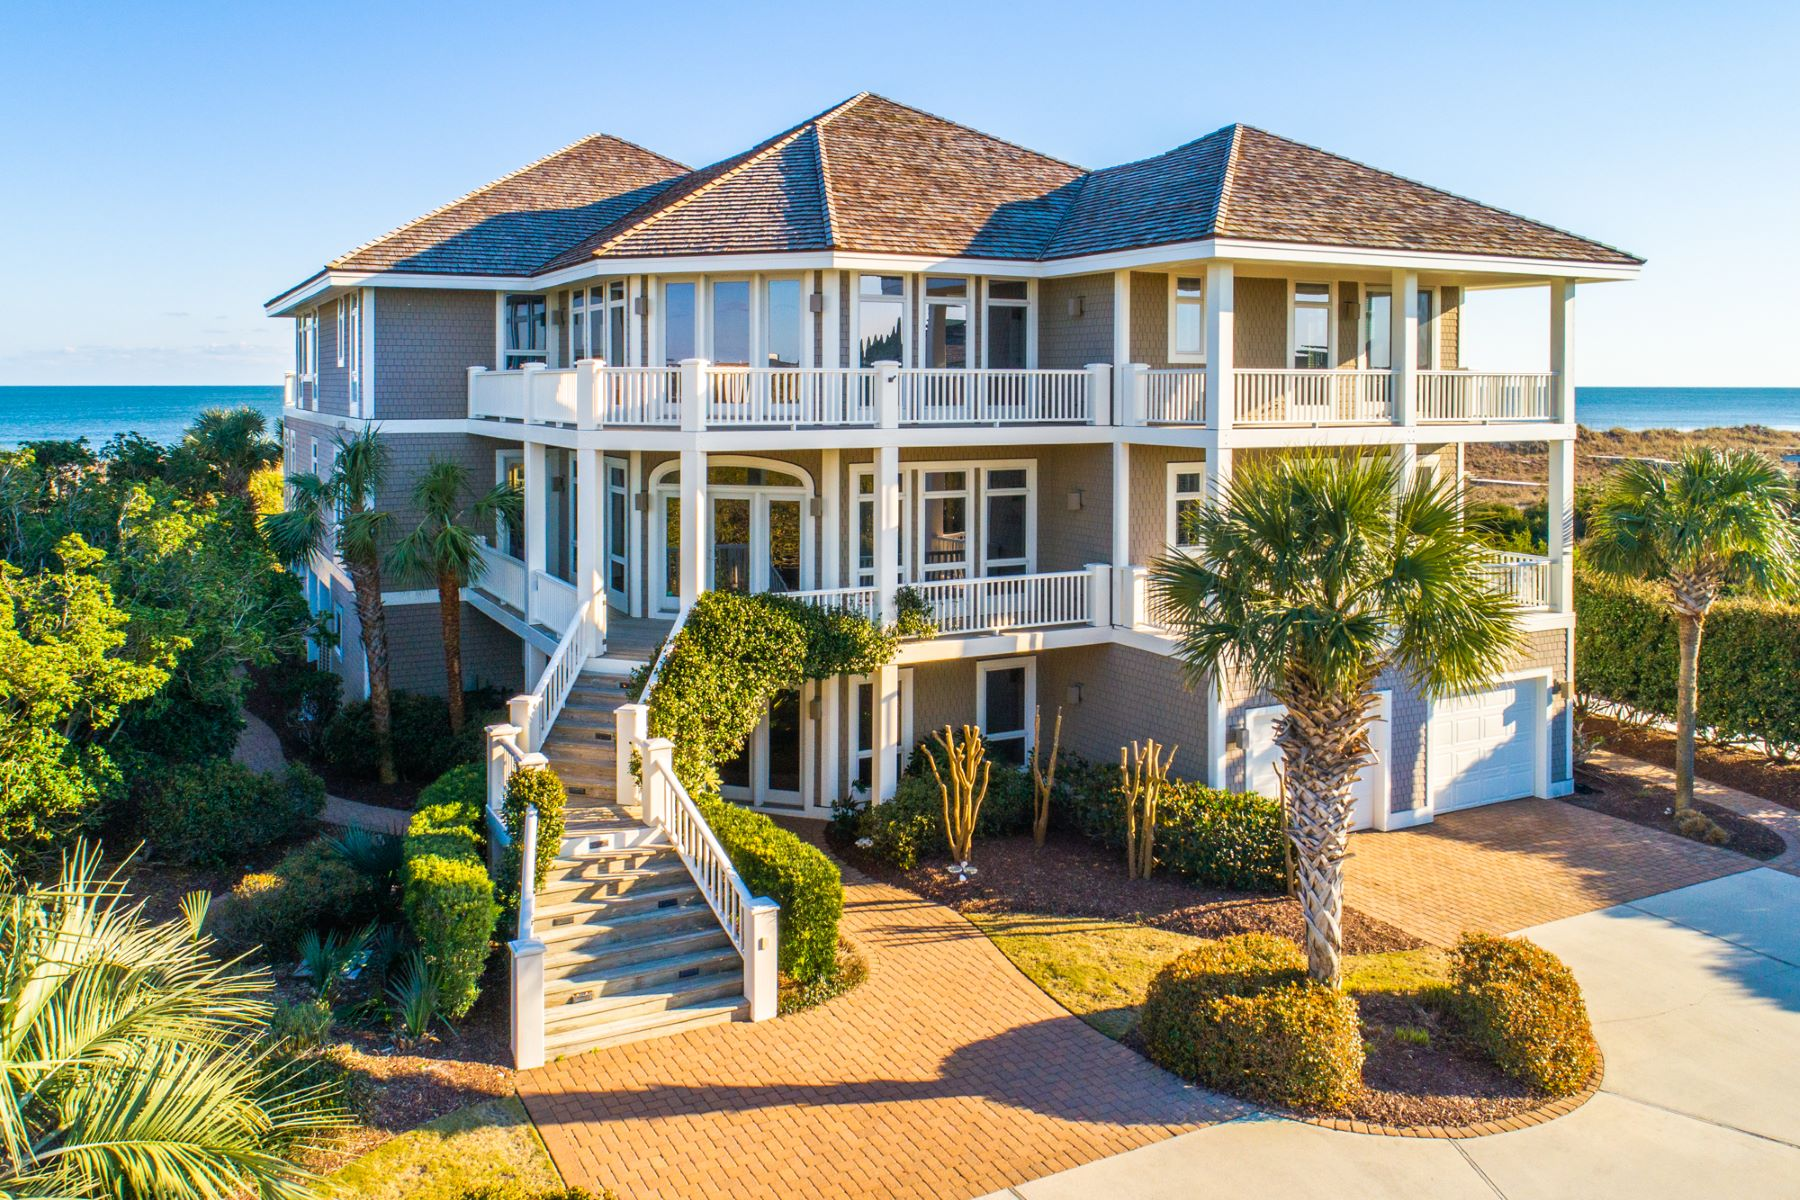 Single Family Homes for Sale at Magnificent Oceanfront Residence on Private and Gated Island in North Carolina 1 Surf Court Wilmington, North Carolina 28411 United States